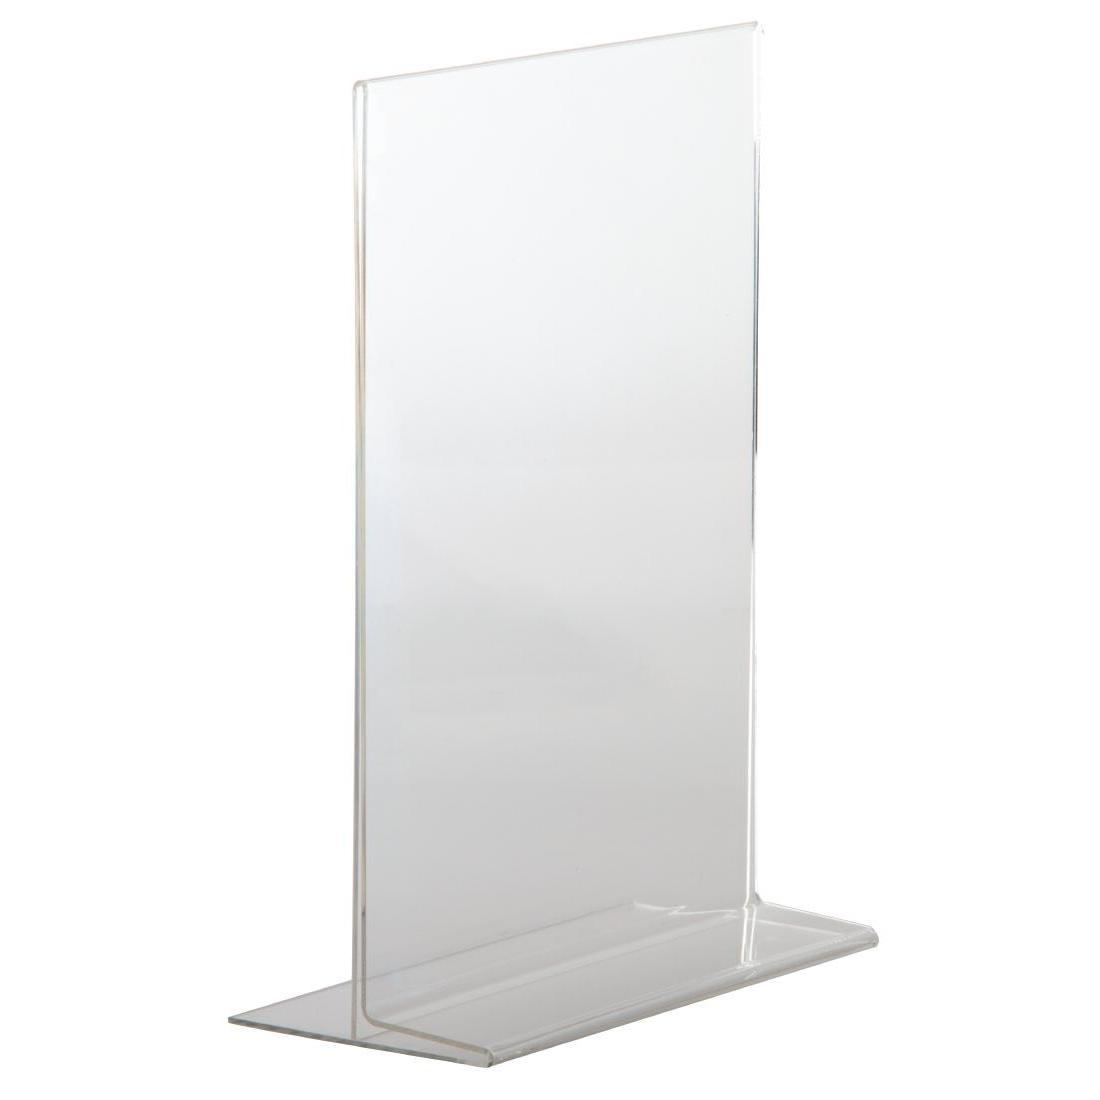 Upright Acrylic Menu Holder A4